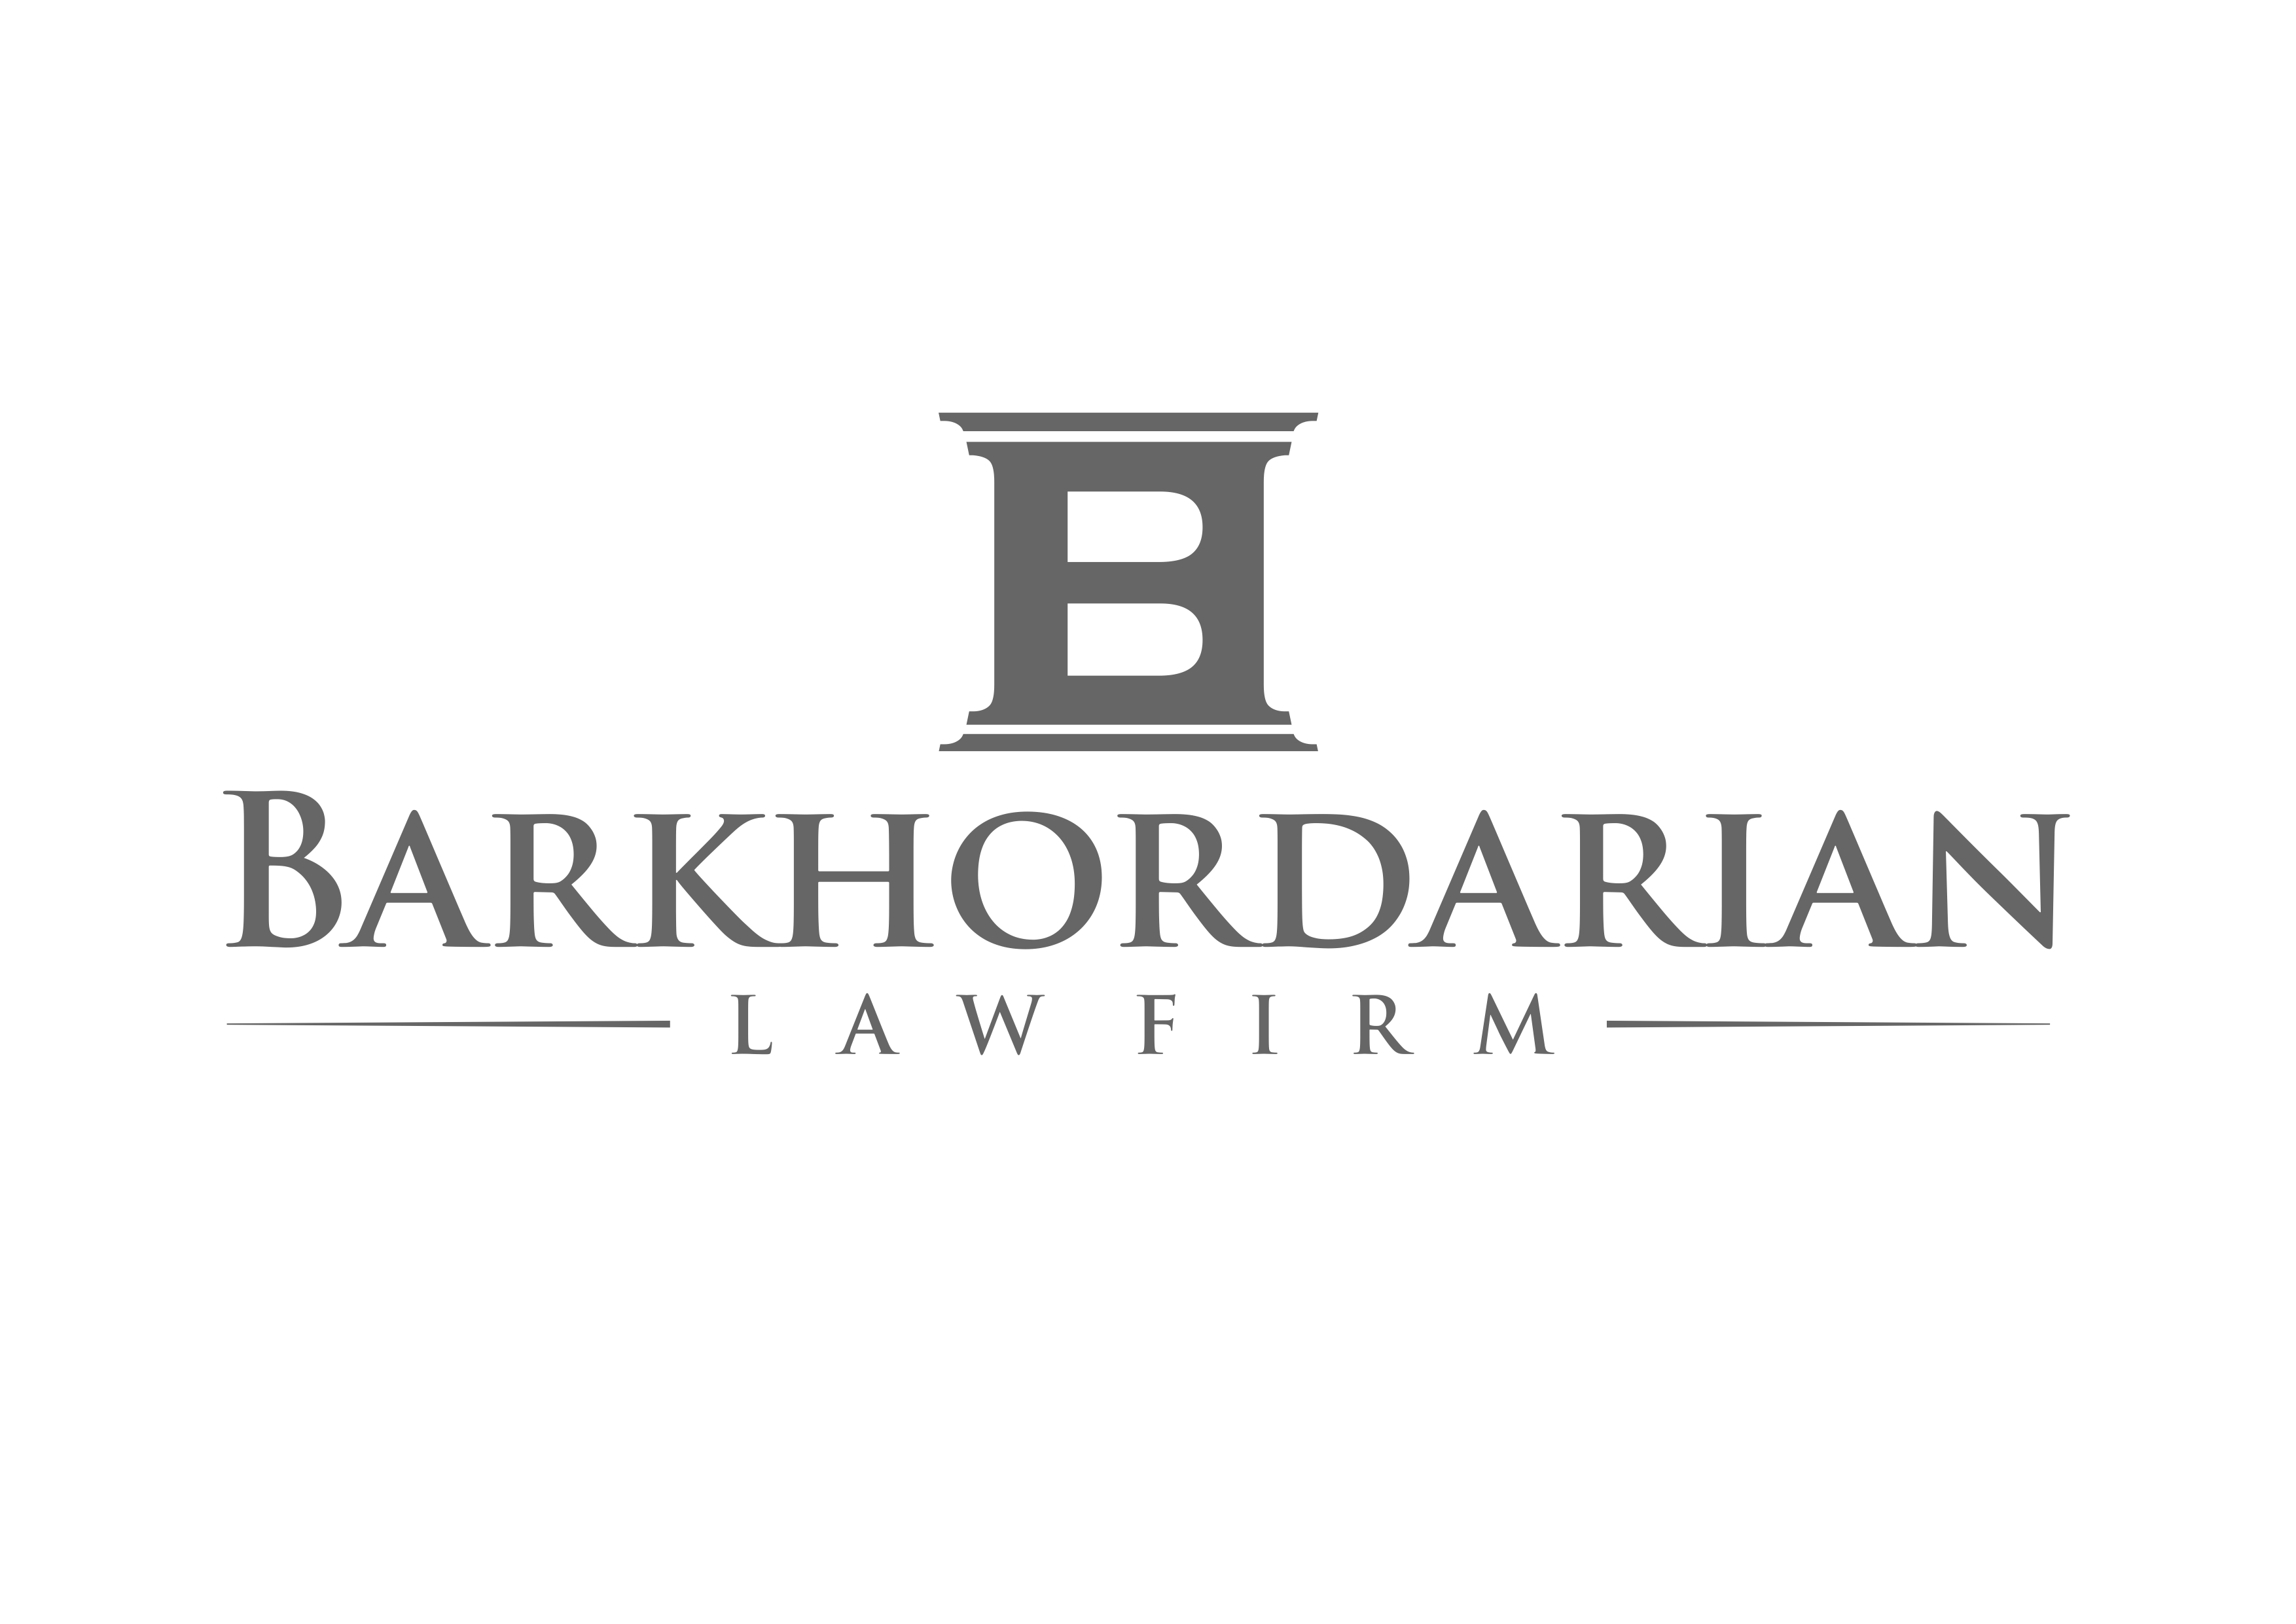 Barkhordarian Law Firm, PLC 1930 Wilshire Blvd Suite 1207